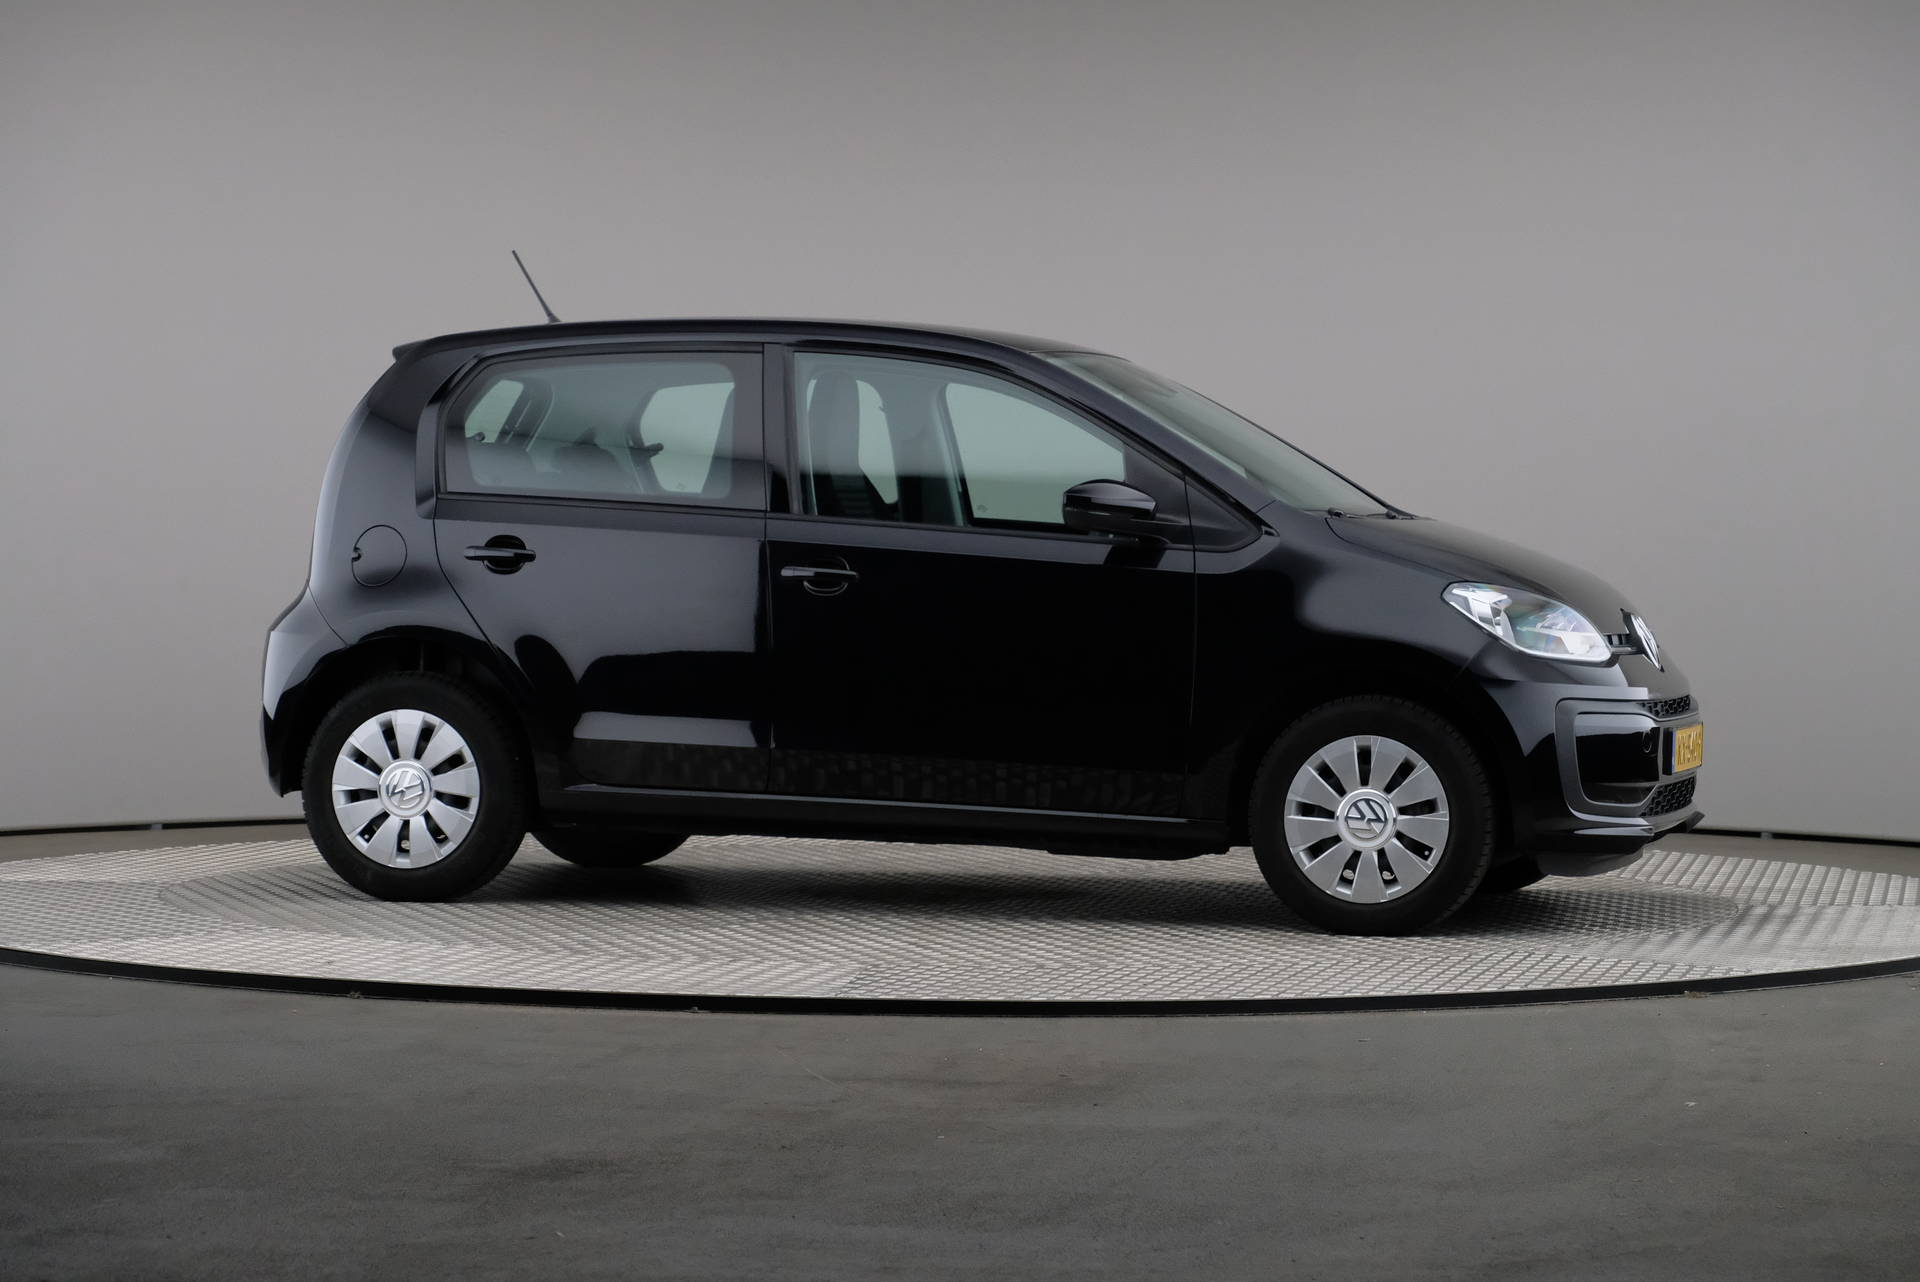 Volkswagen up! 1.0 44kW Move up! BlueMotion Technology, Airconditioning, 360-image25